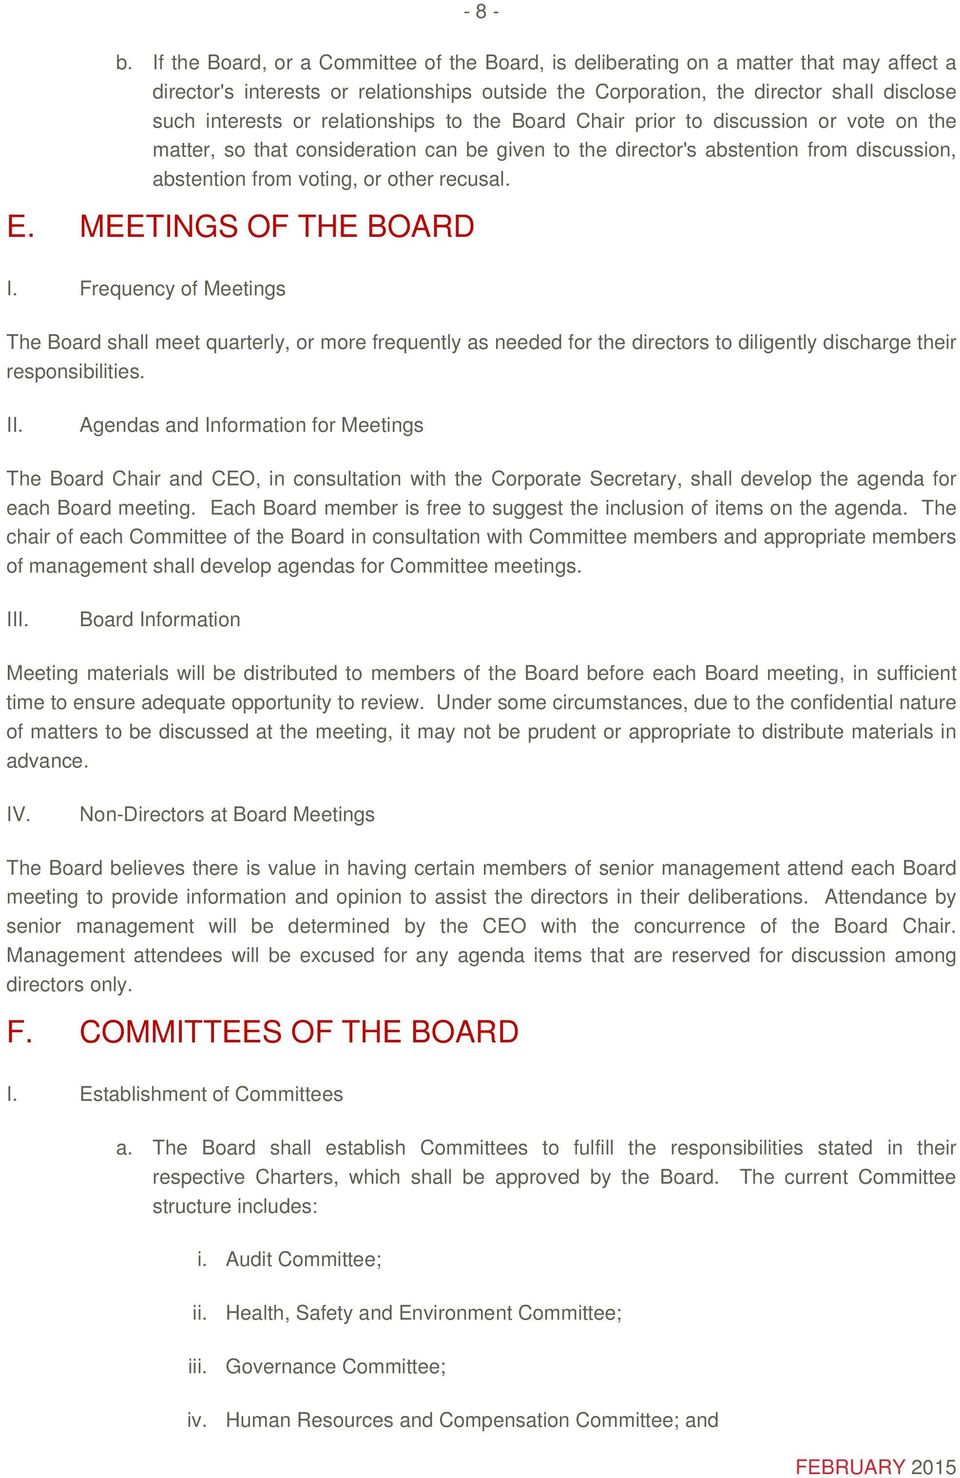 relationships to the Board Chair prior to discussion or vote on the matter, so that consideration can be given to the director's abstention from discussion, abstention from voting, or other recusal.